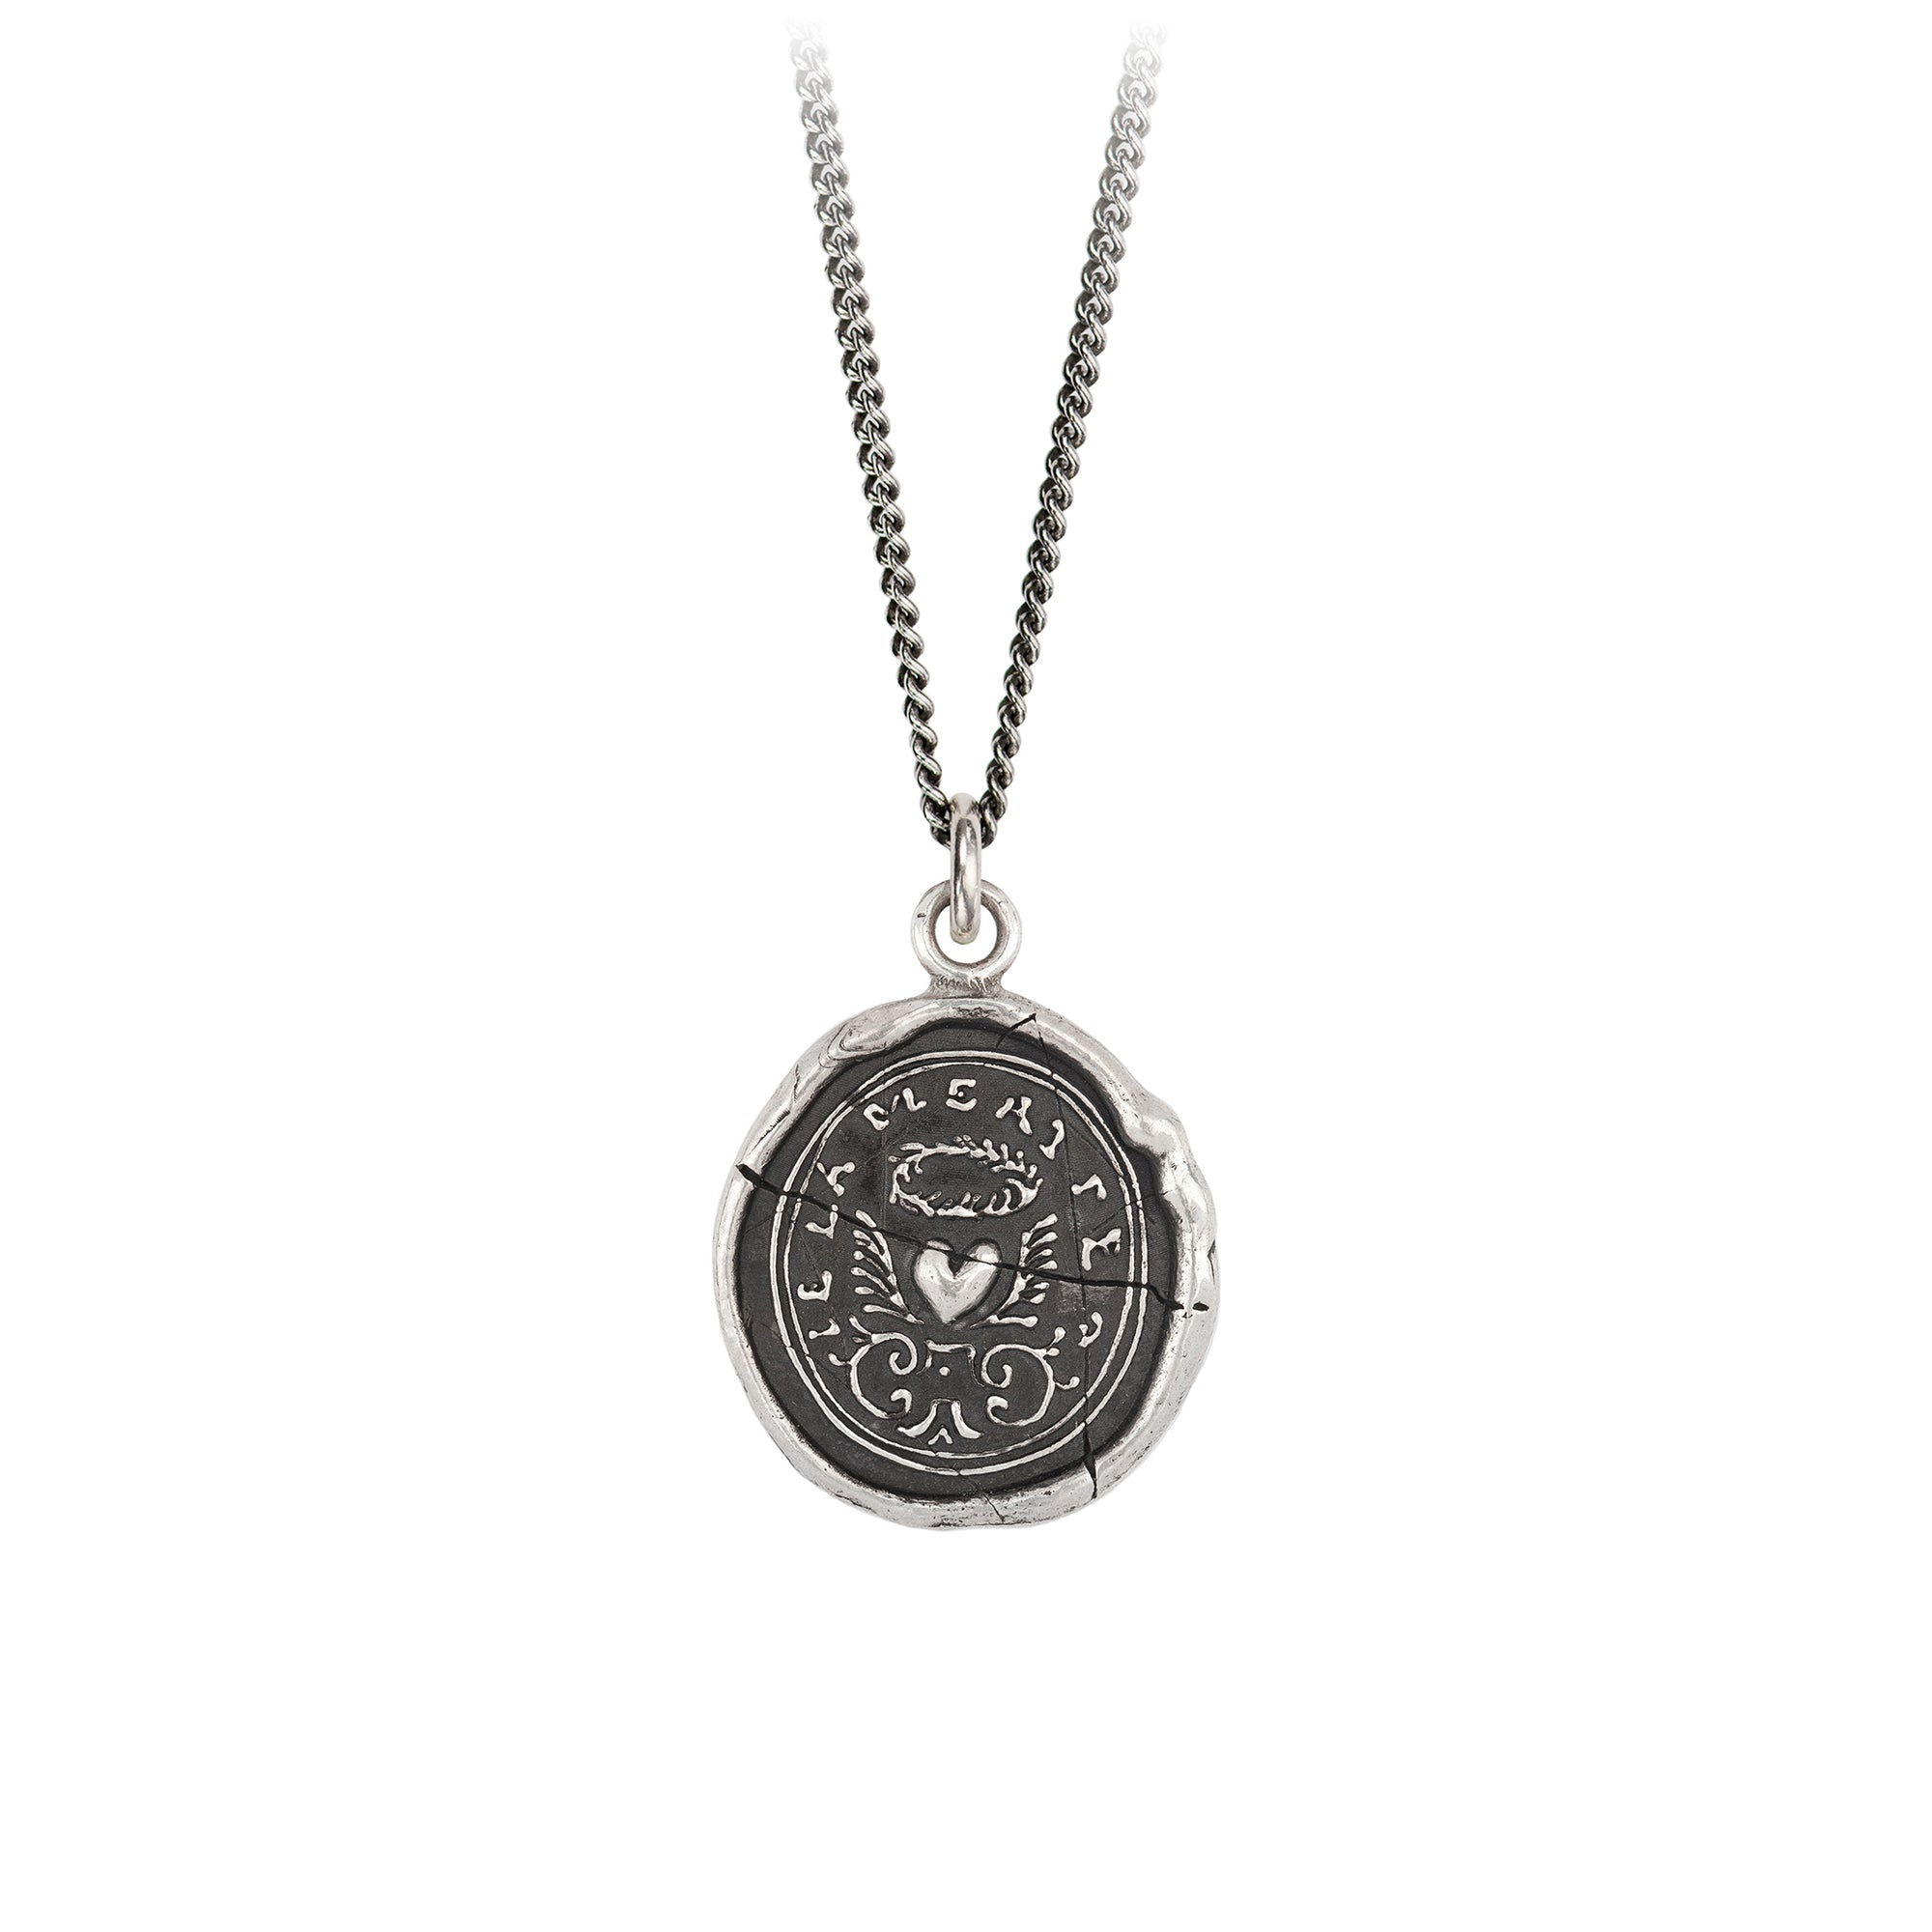 Pyrrha True Self Talisman Necklace Fine Curb Chain Silver